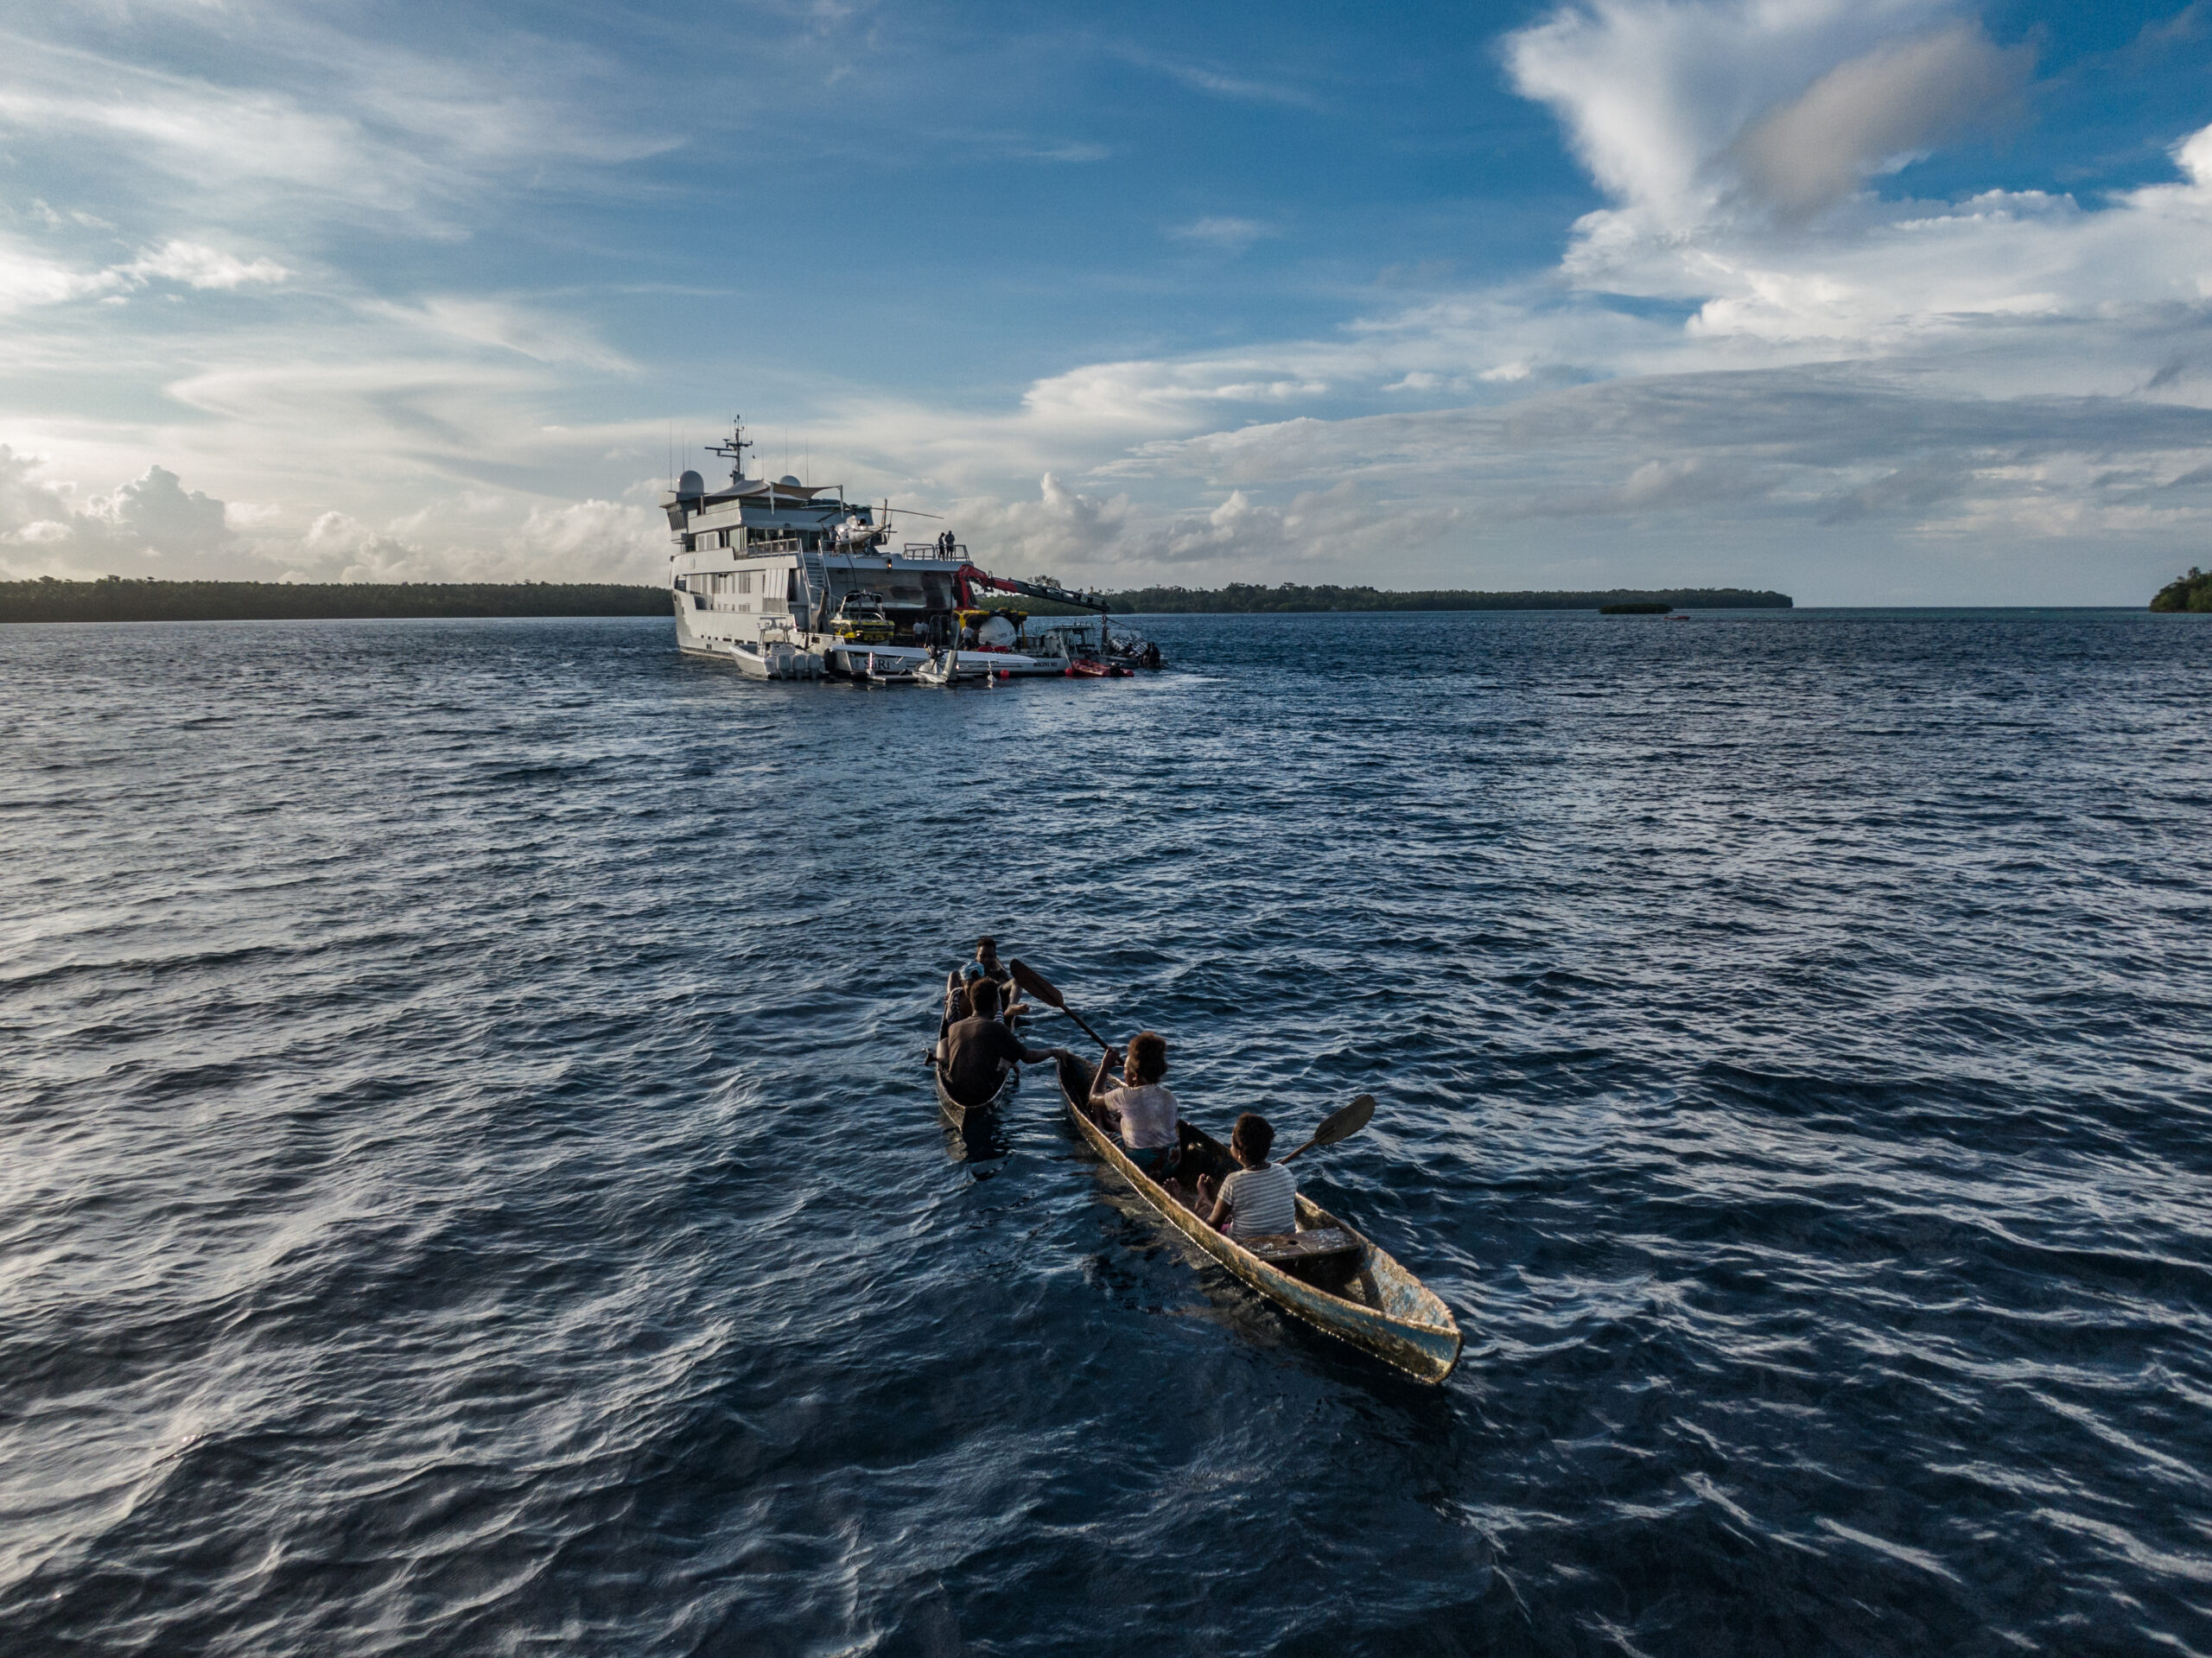 A new wave of exploration - Cookson Adventures in the Solomon Islands